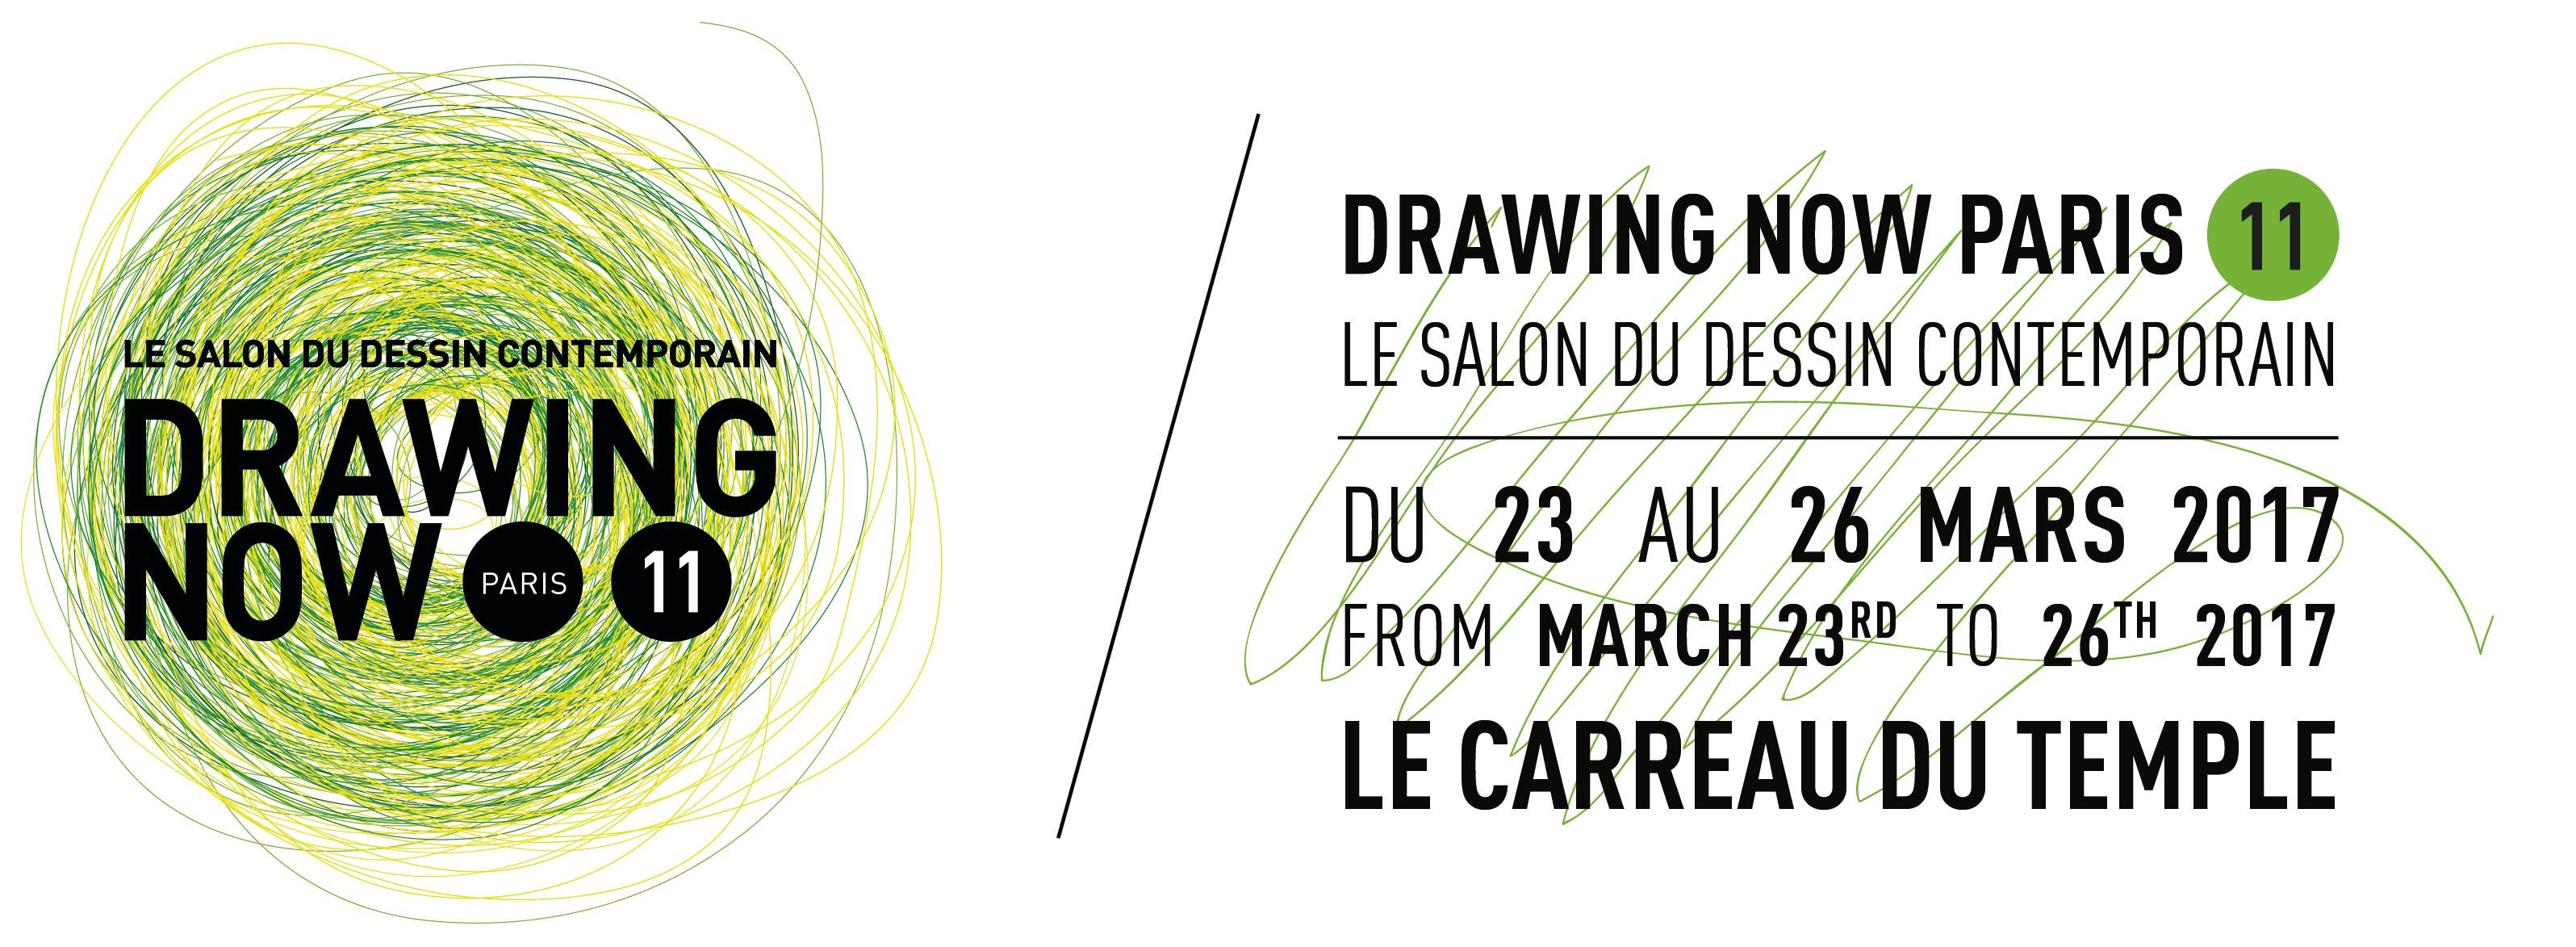 [AGENDA] 23→26.03 – Drawing Now Paris ⎮ Le Salon du dessin contemporain – 11e édition